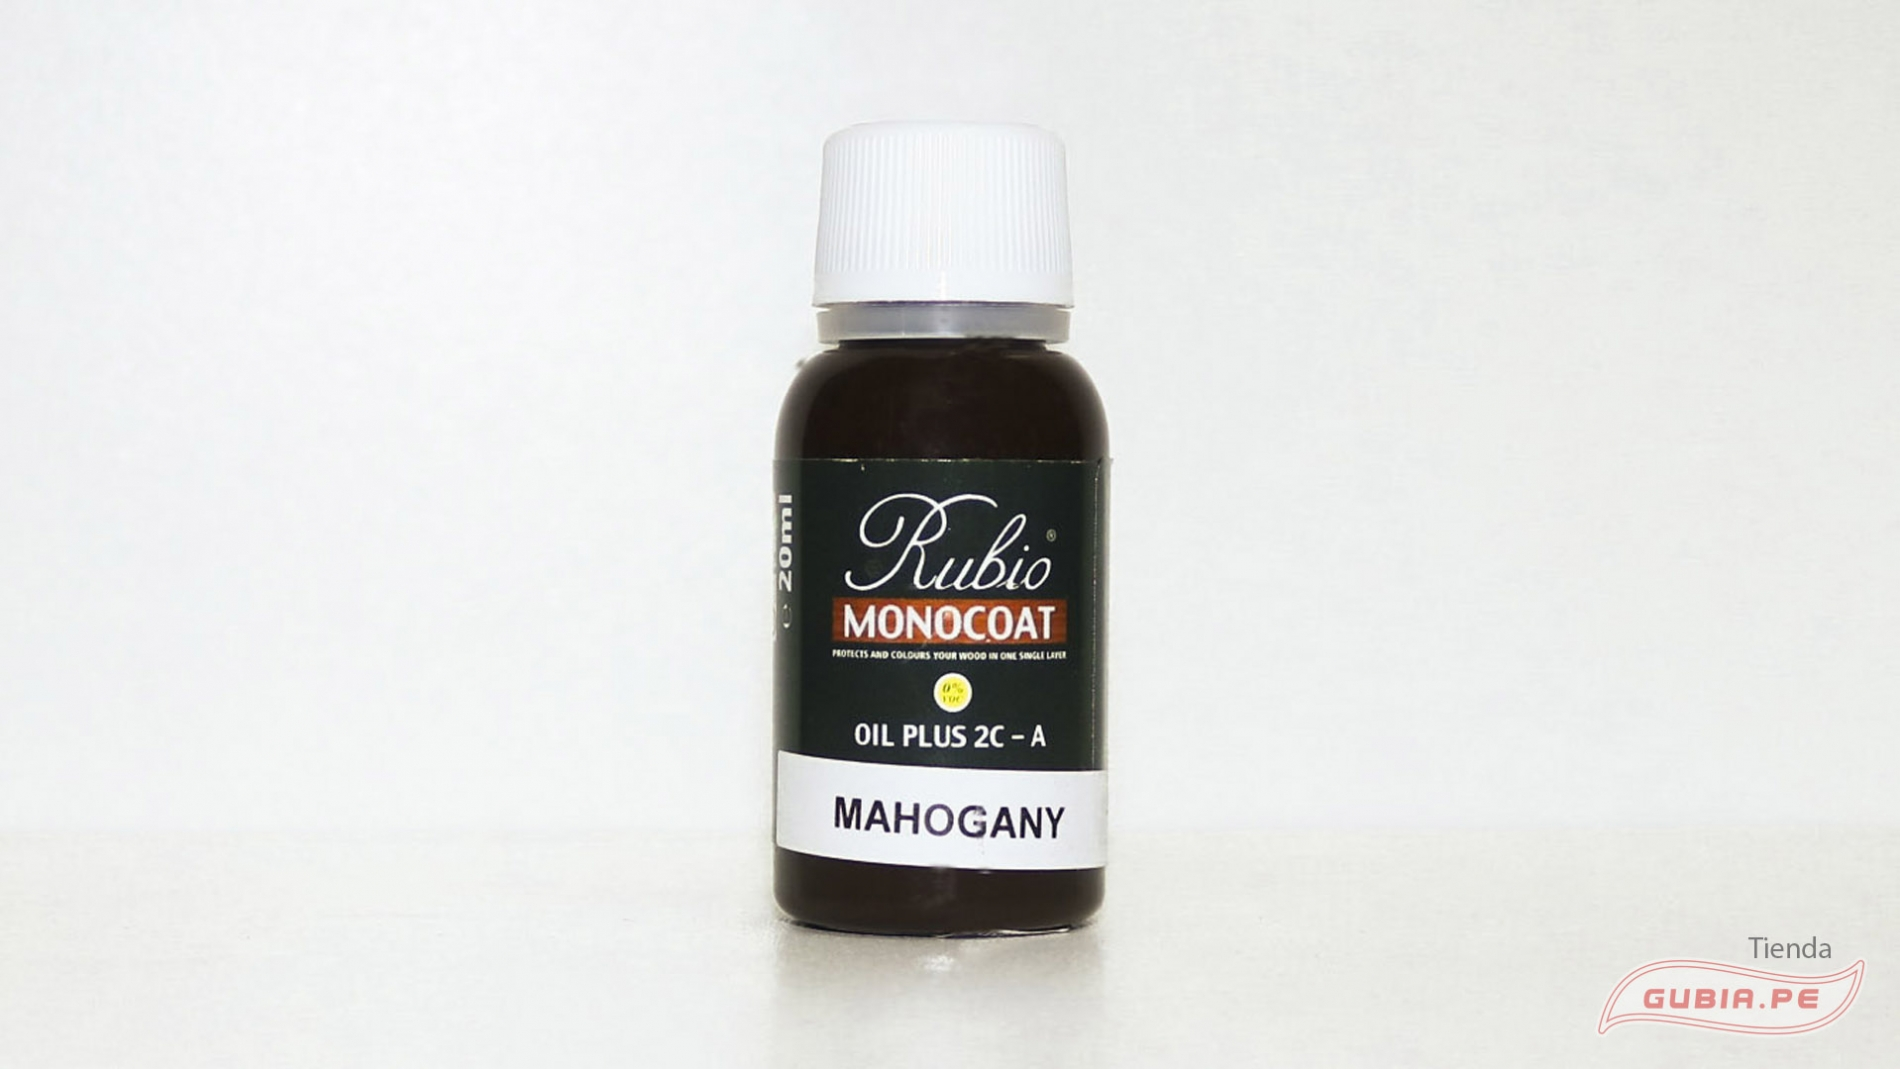 5410761168614-Mahogany Oil Plus 2C-A ( 20 ml ) RMC-max-1.